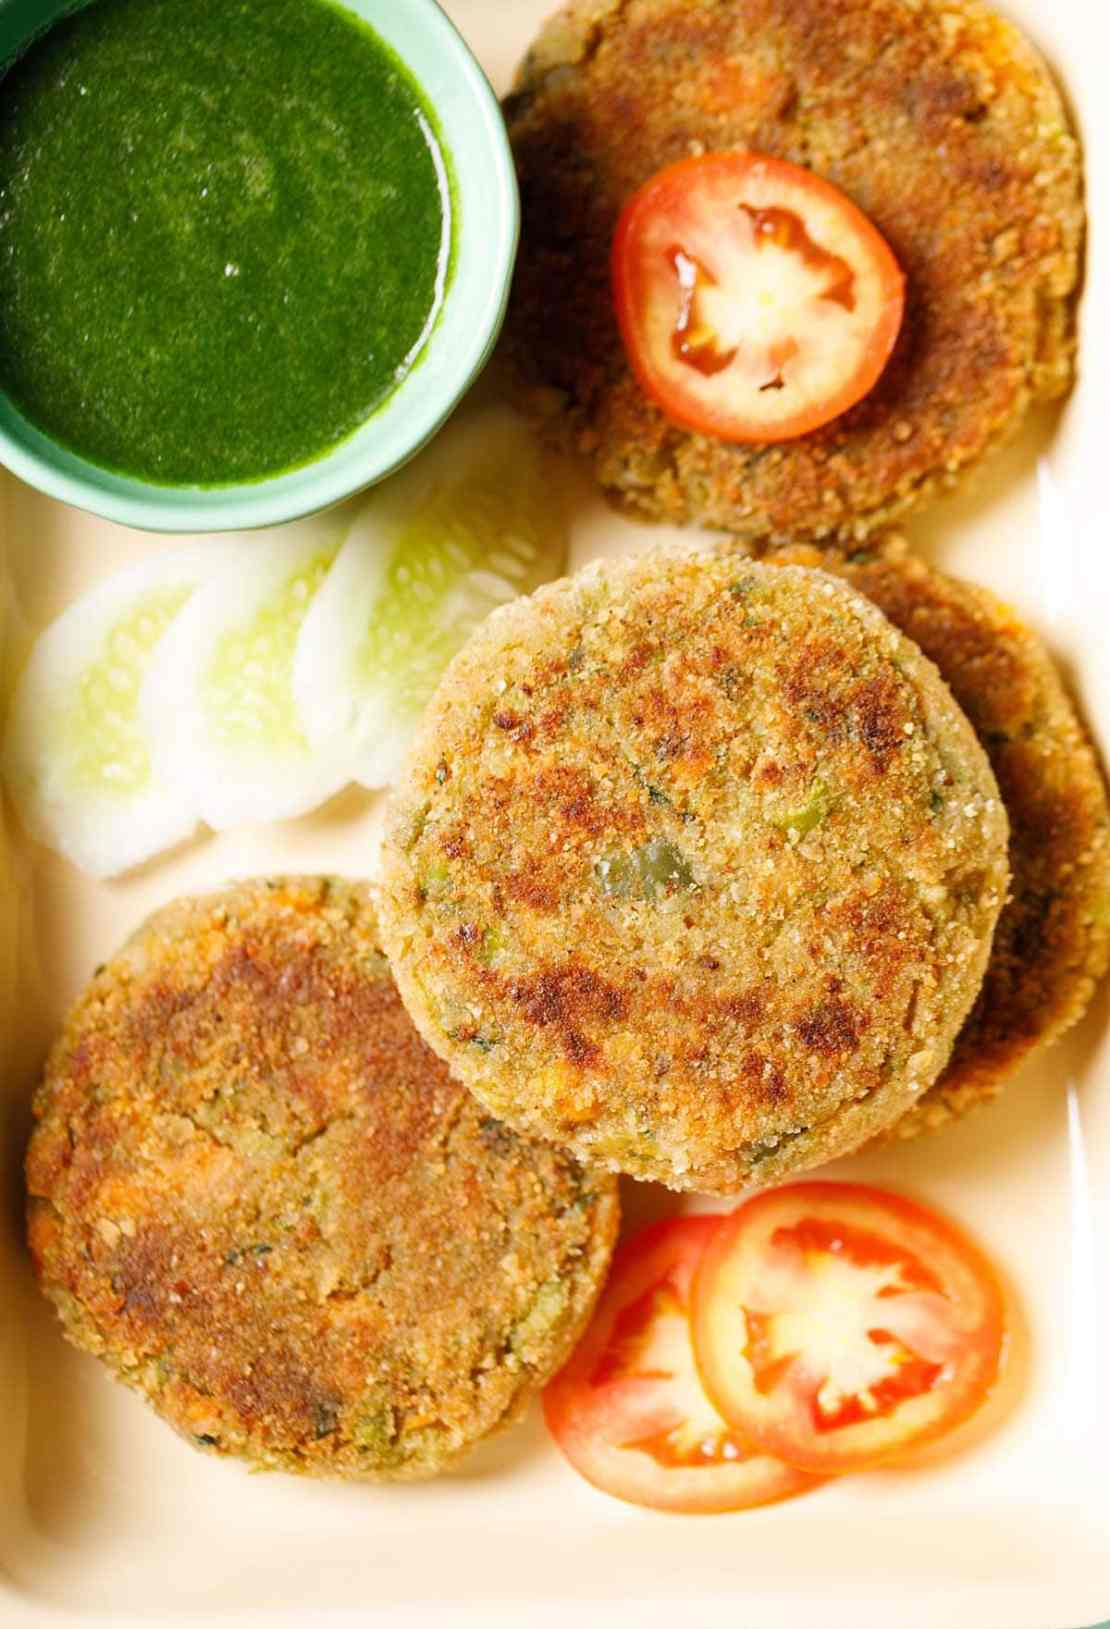 cutlets placed on a tray with a few slices of tomatoes, cucumber and a light green bowl filled with green chutney